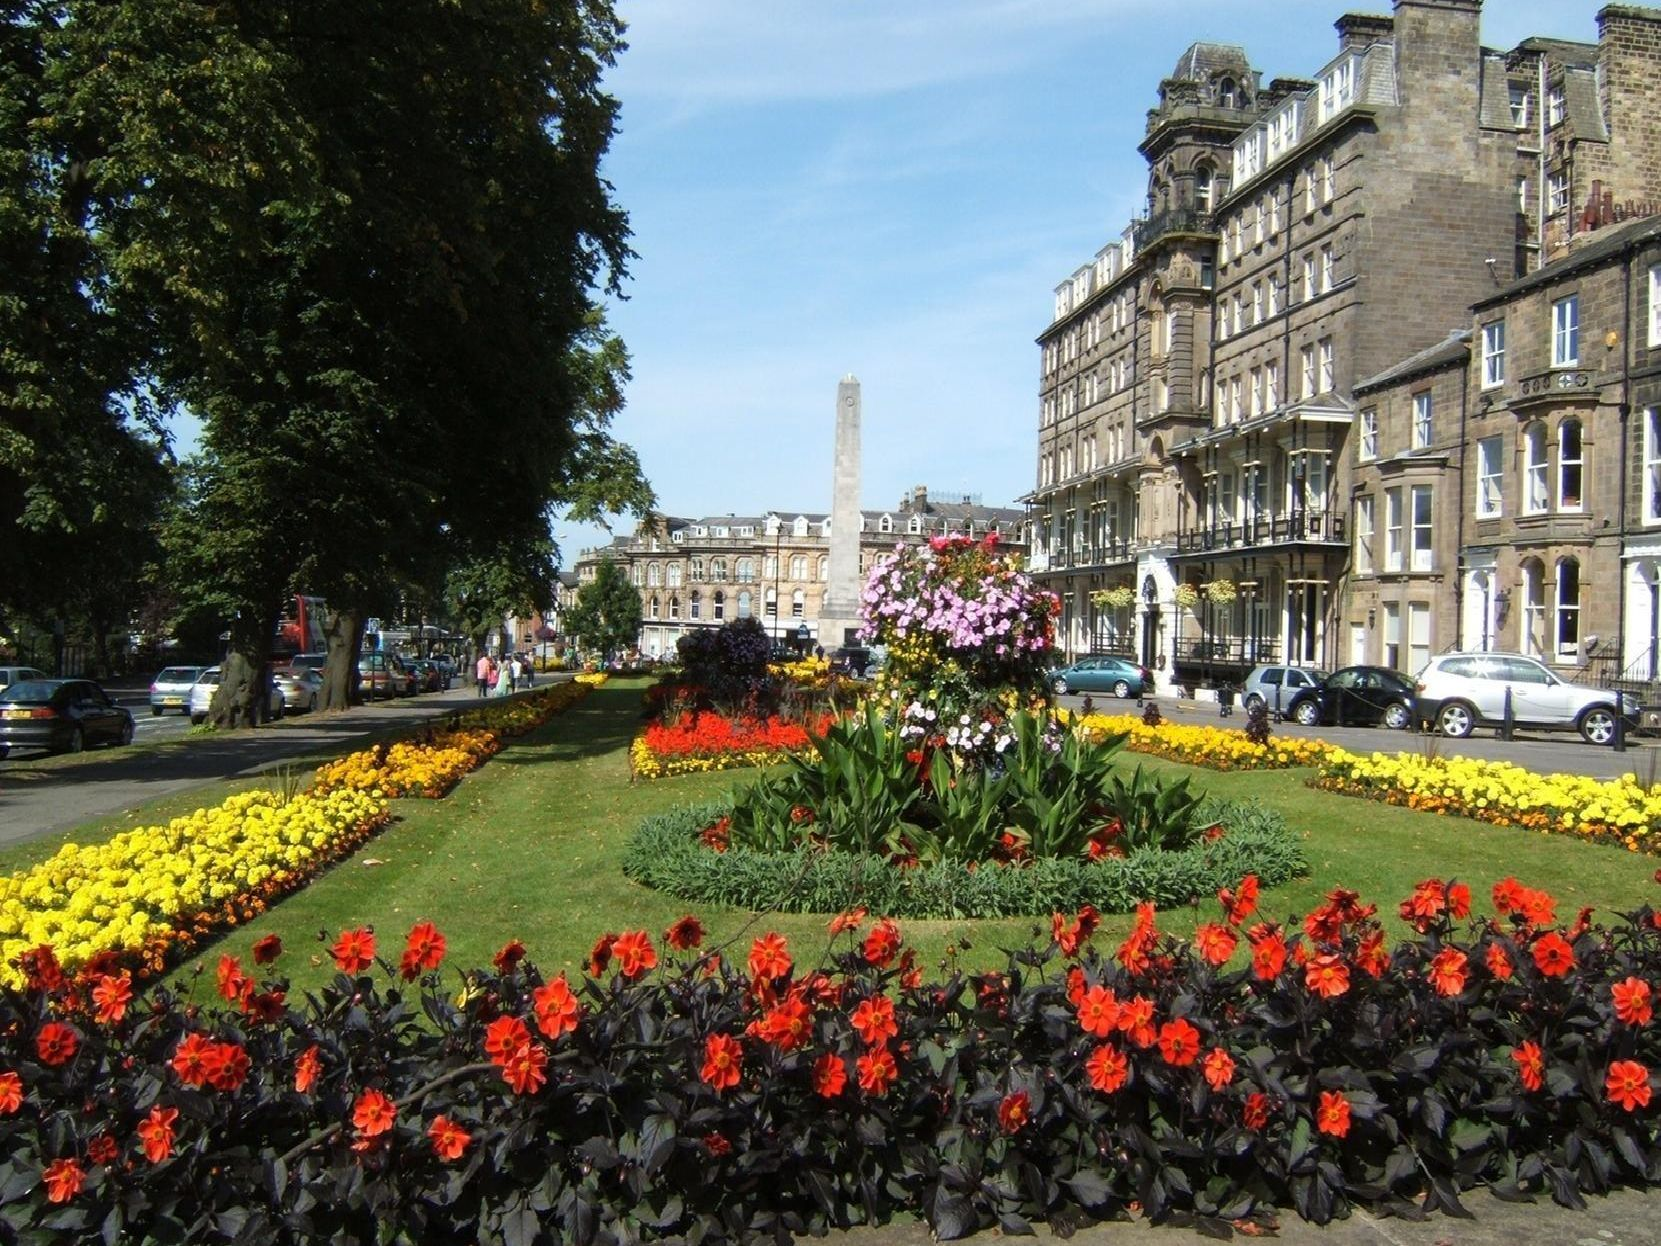 If you're going vegan, Harrogate is just the ticket.'Credit: Other